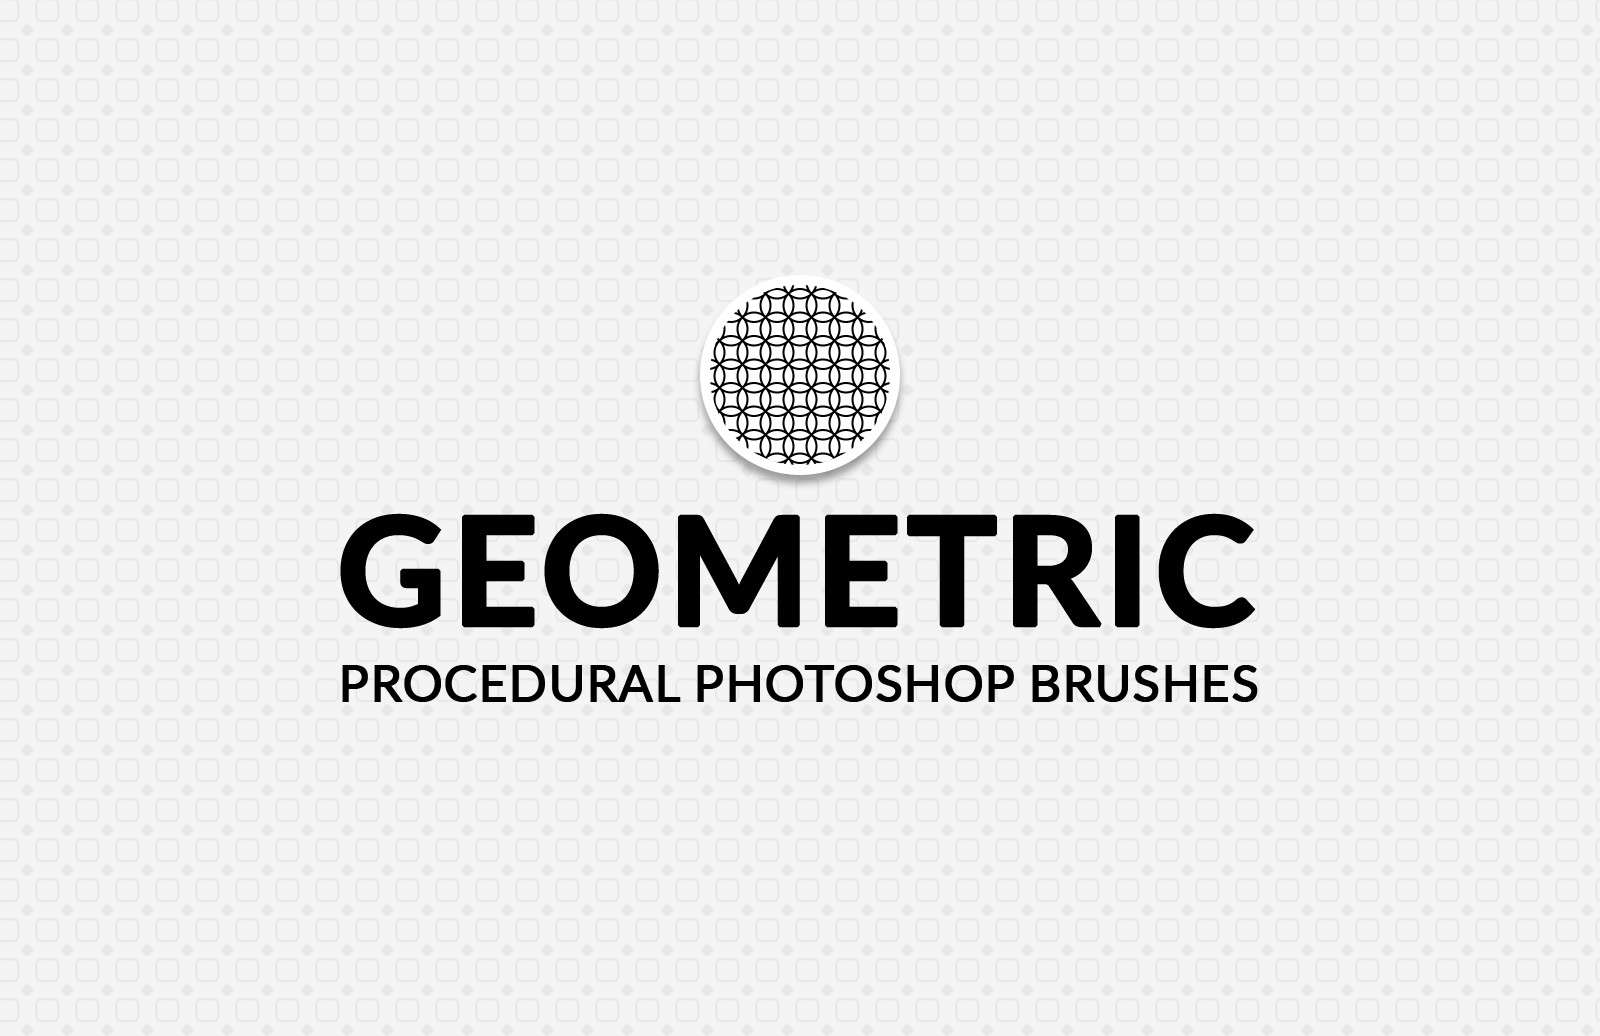 Geometric Procedural Photoshop Brushes Preview 1